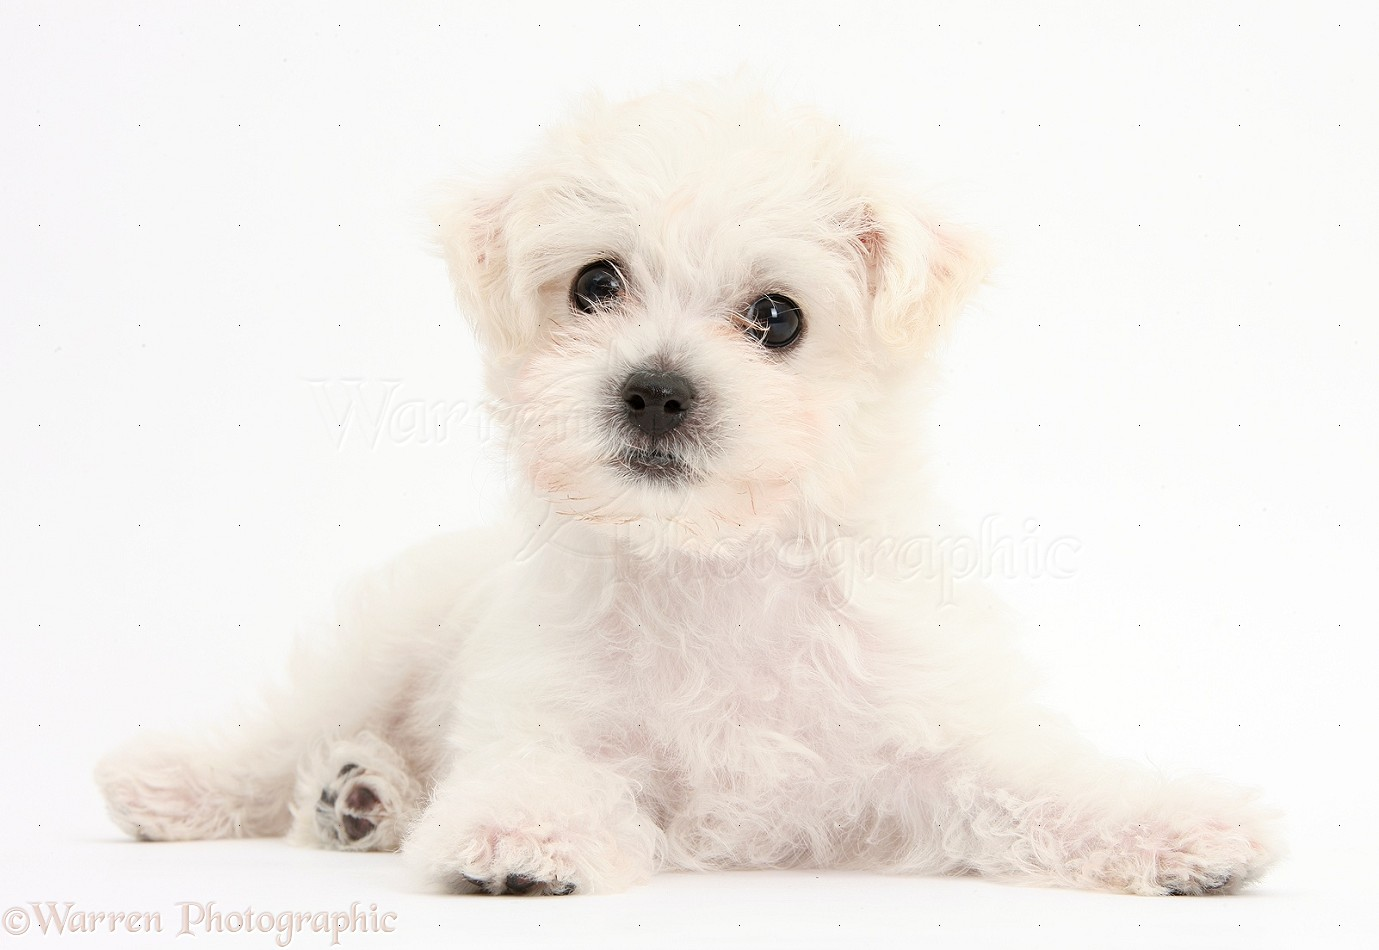 Adorable White Yorkie Puppies Cute white bichon x yorkie